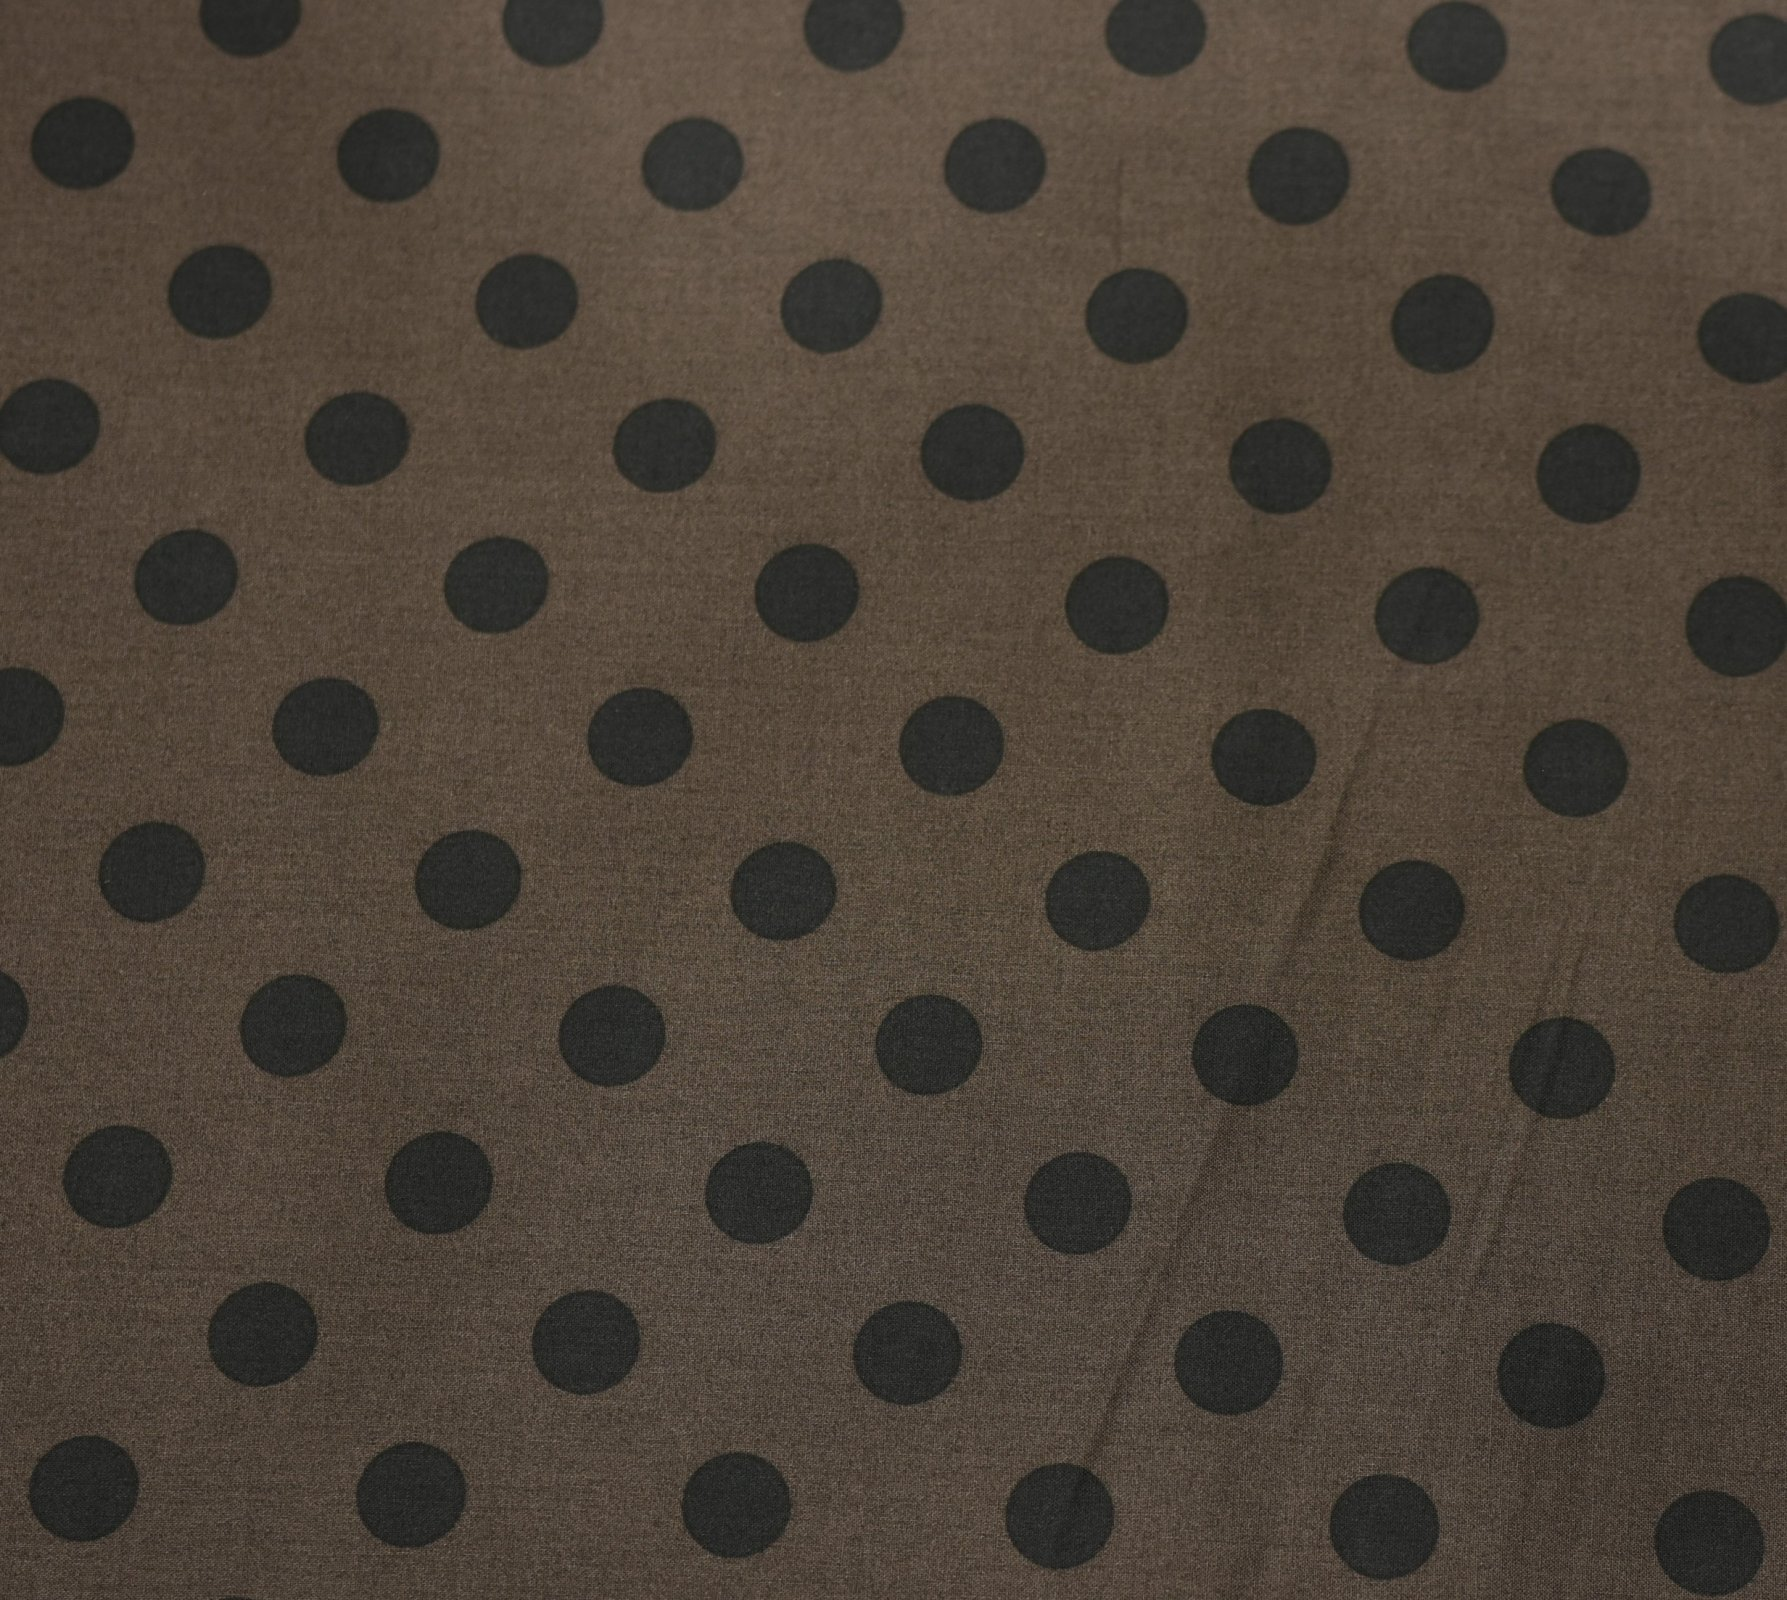 Japanese Fabric - Color Cocktails - Spots - Chocolate/Black